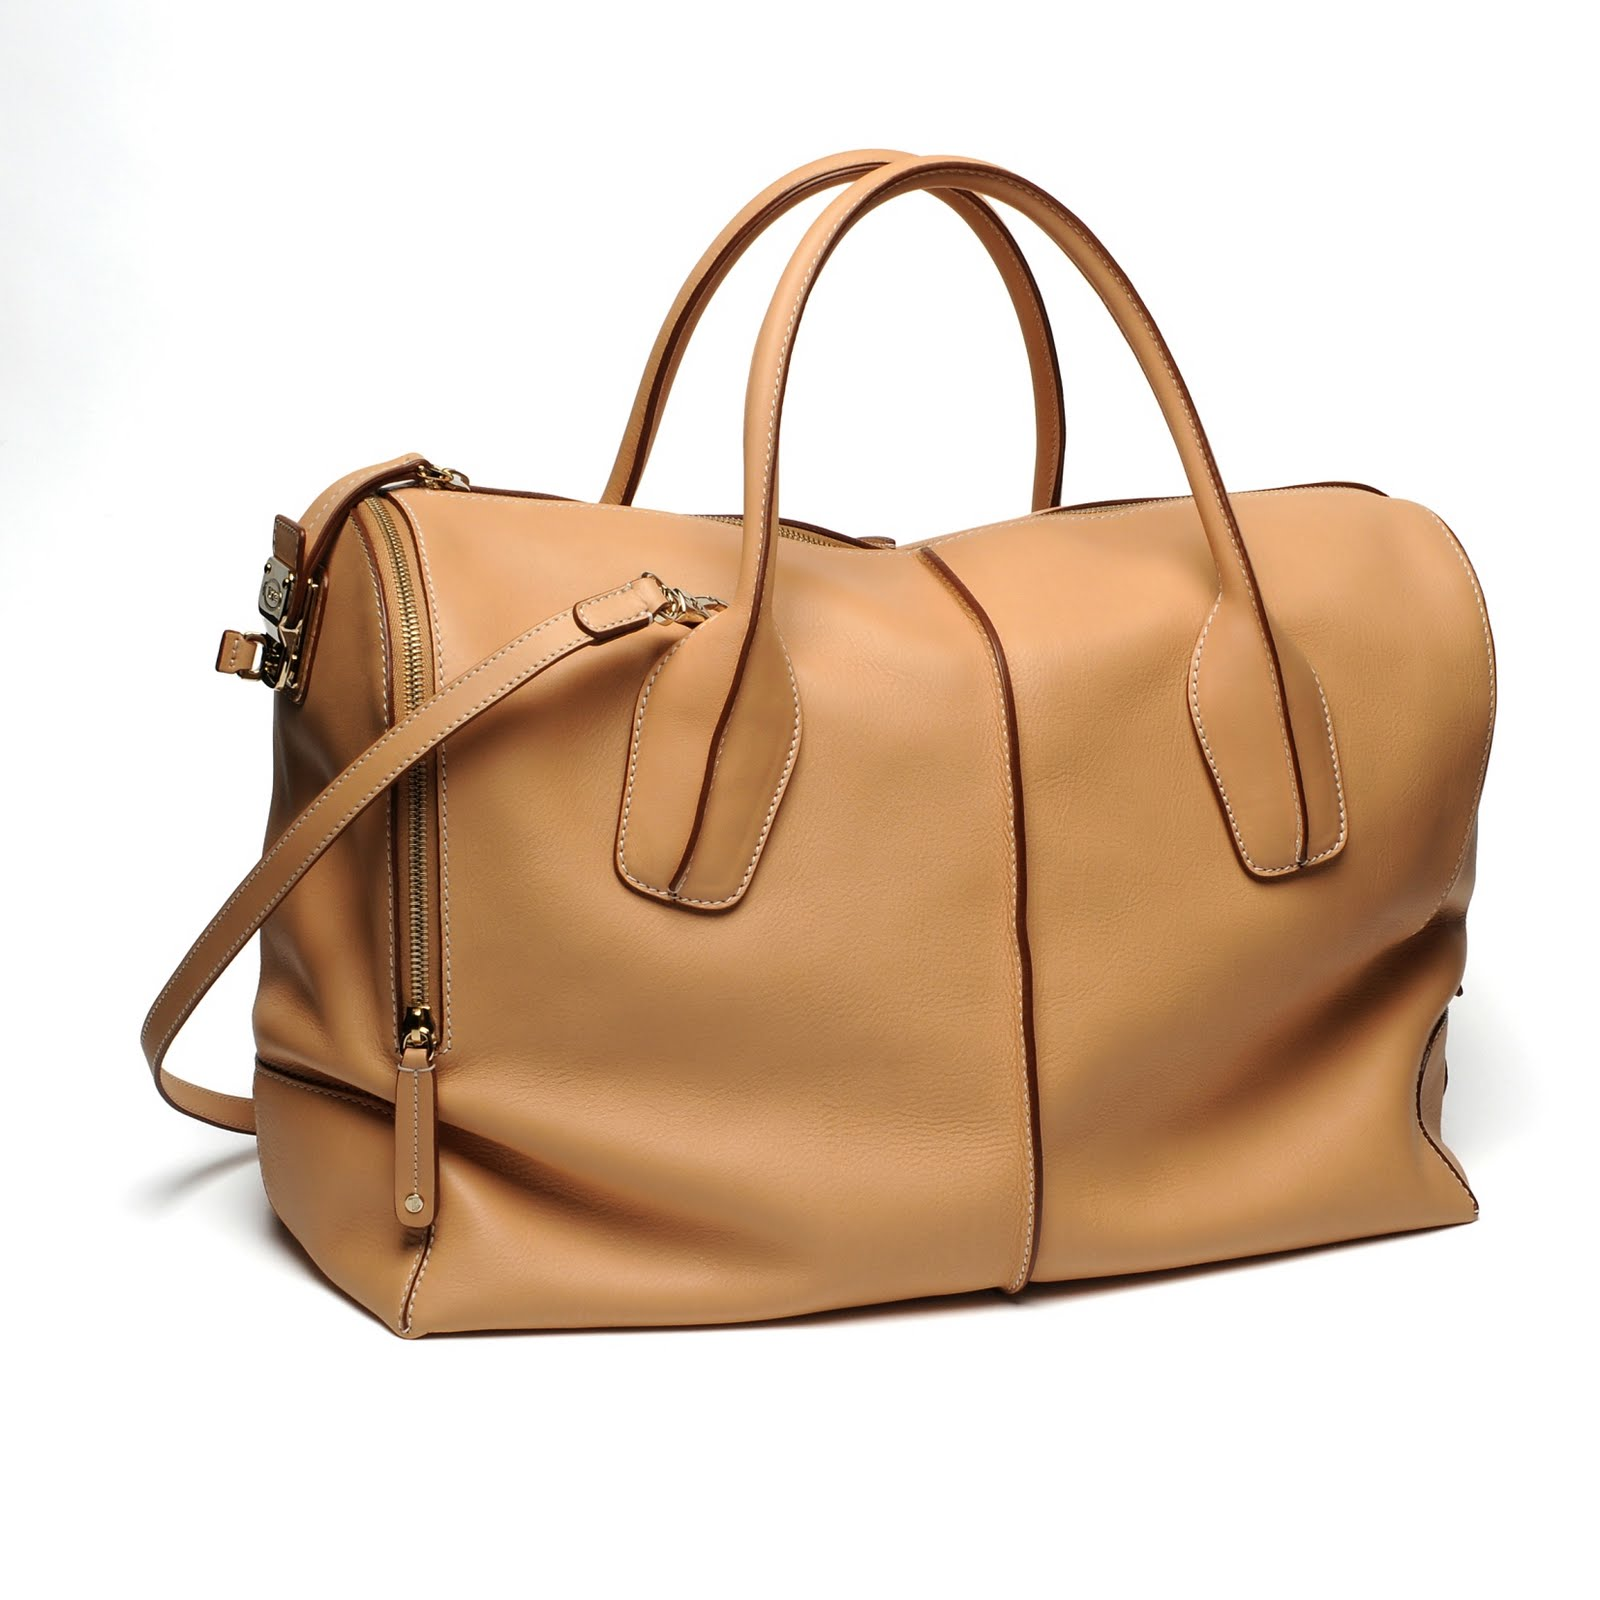 Tods Overnight Bag Weekender Simply Fabulicious S Hong Kong Charity On Mothers